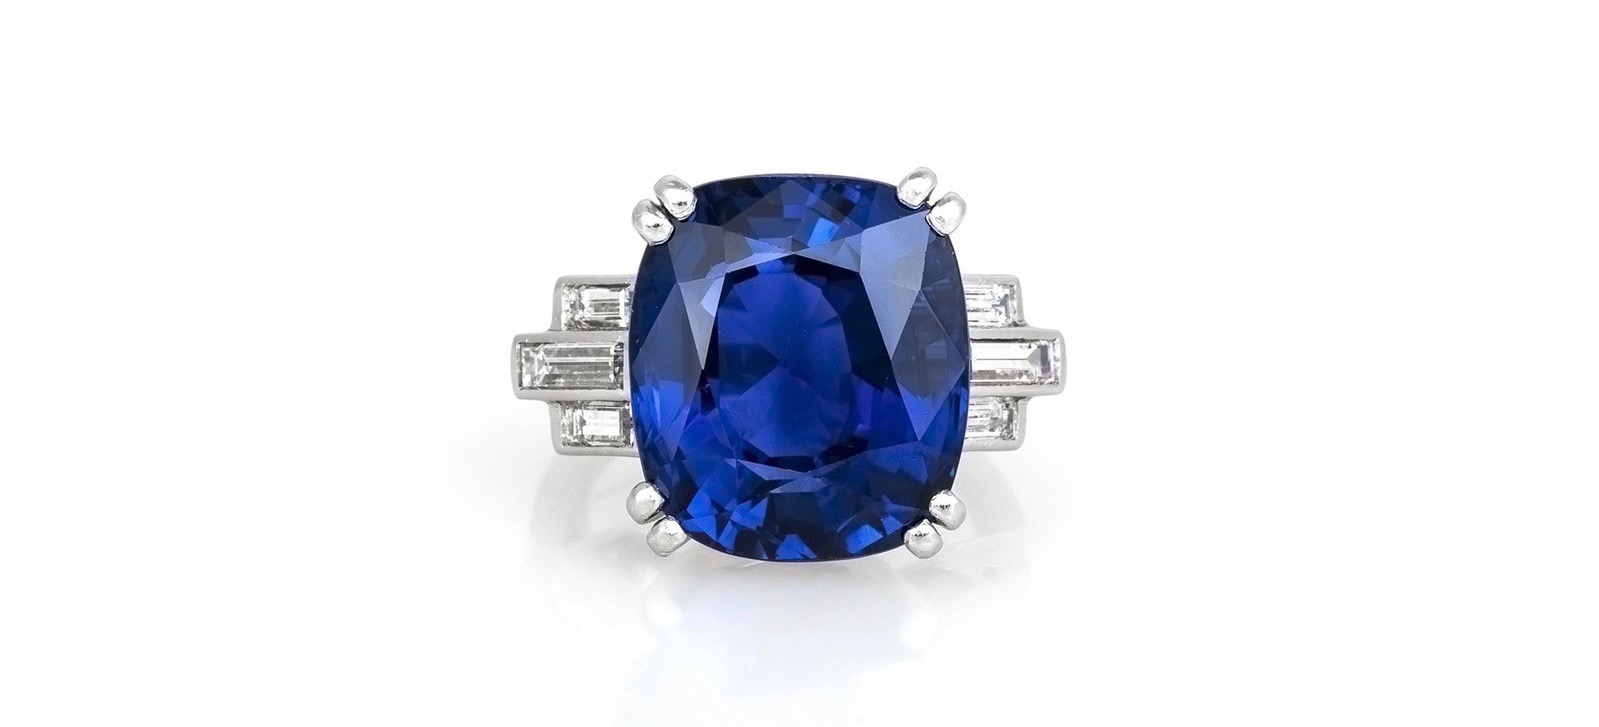 17.13 Carat AGL Certified Ceylon Sapphire Ring from Eric Originals & Antiques on Up On Park